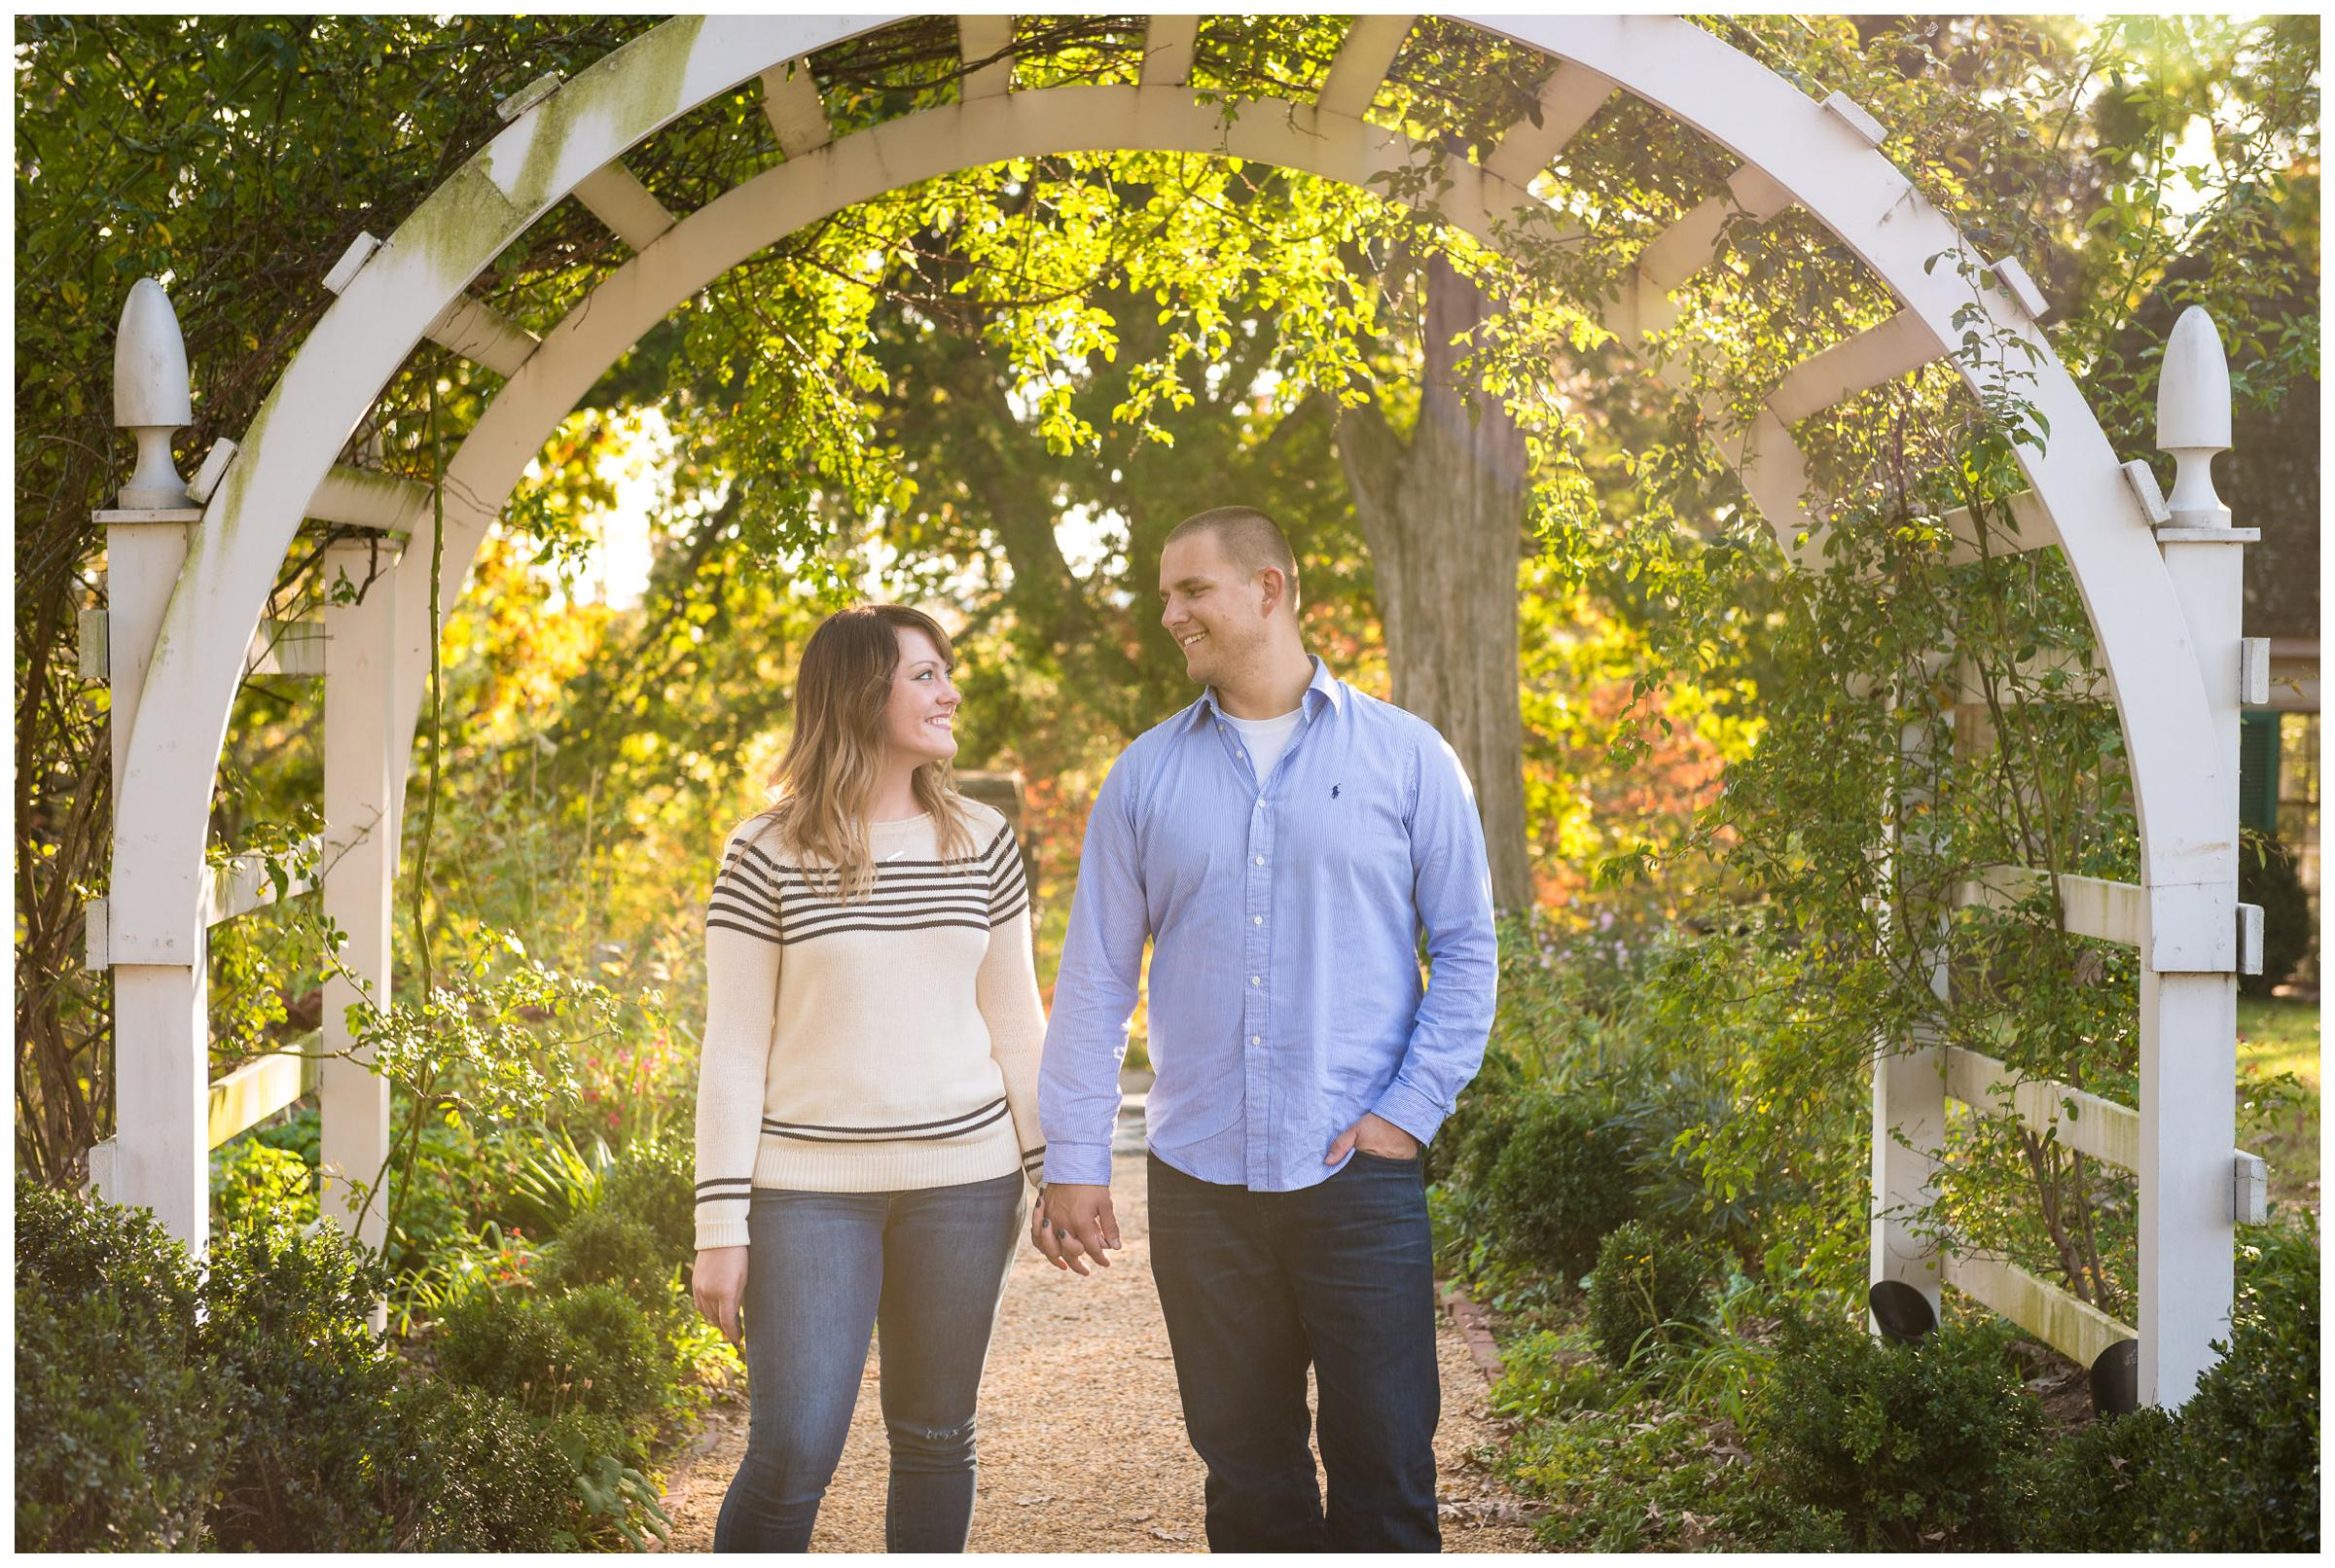 engaged couple under archway with sun flare